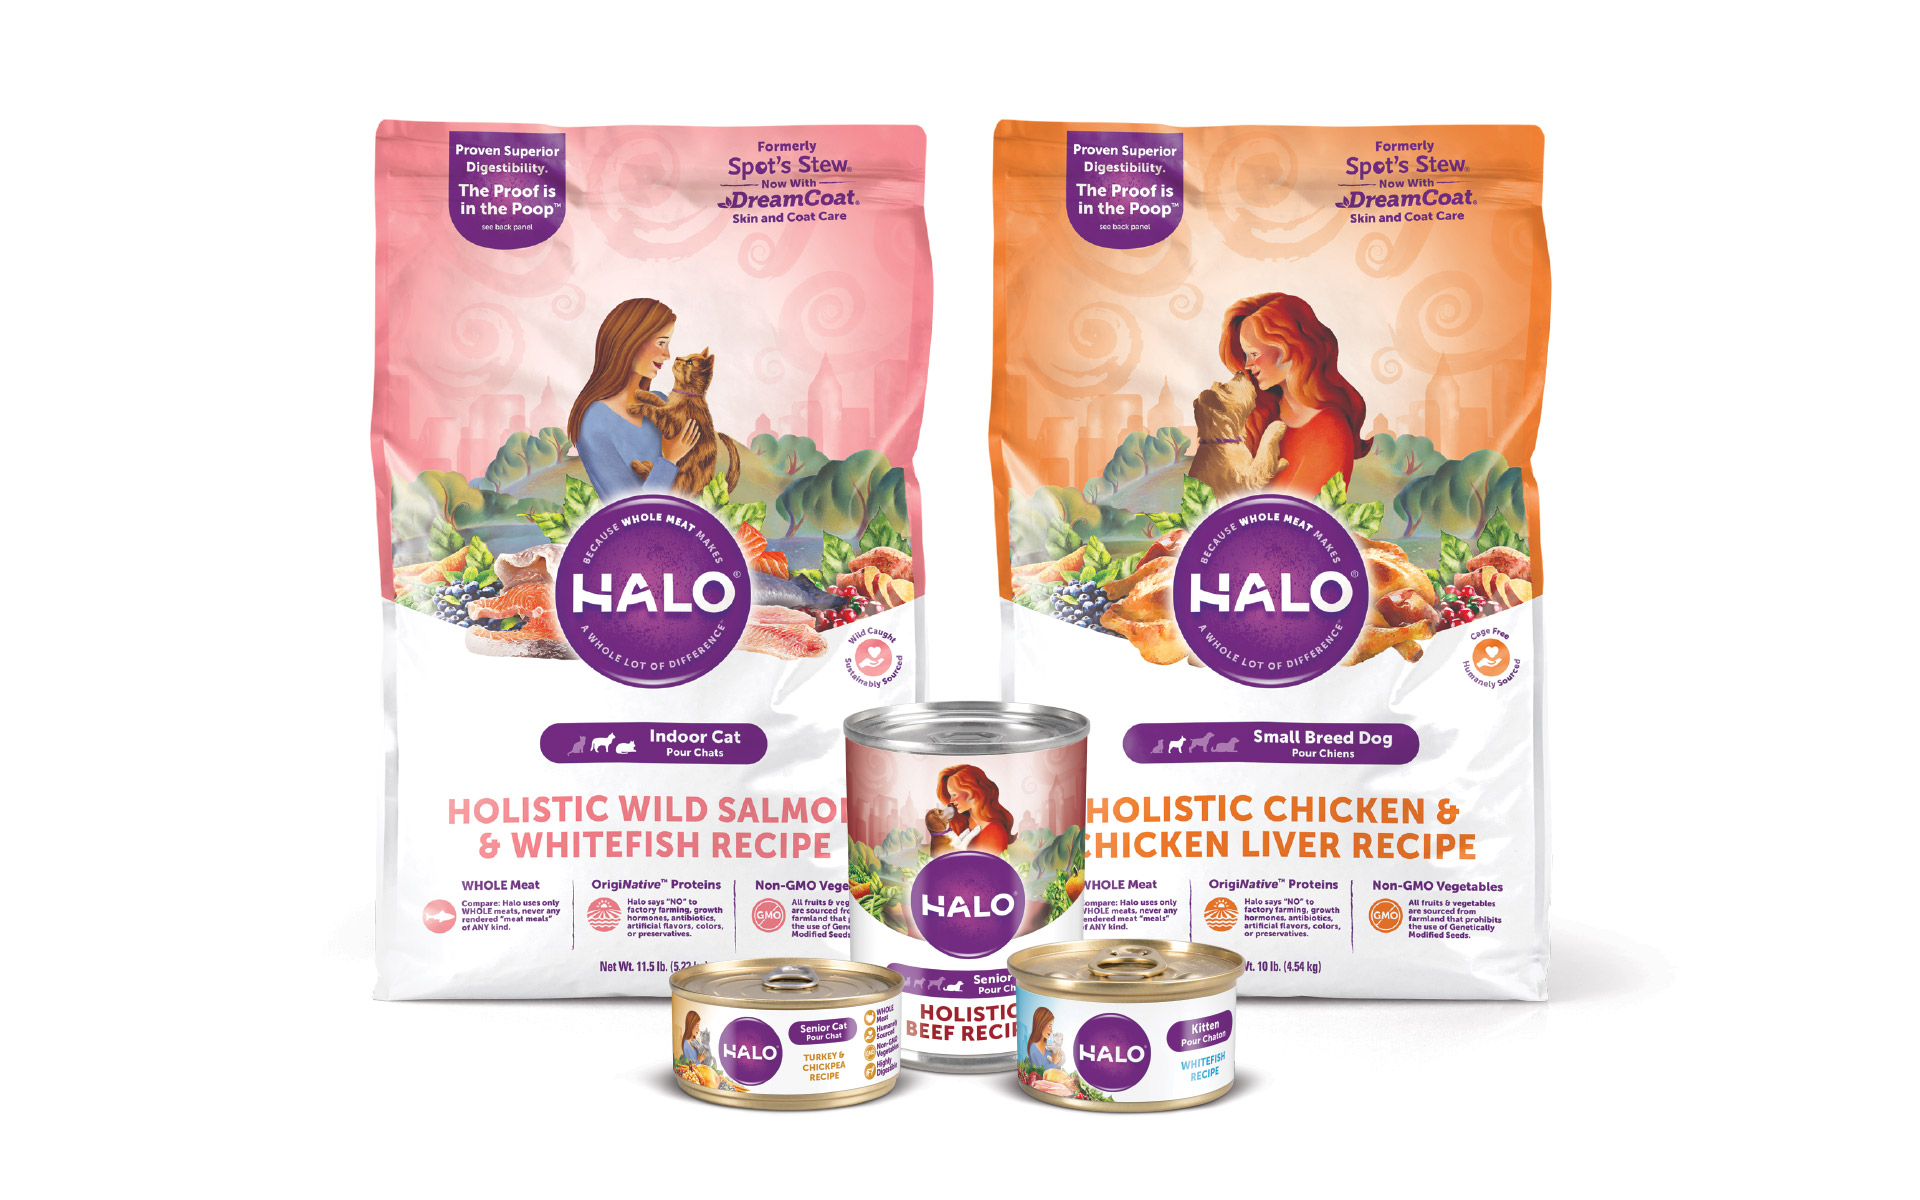 Halo - Brand Packaging Design